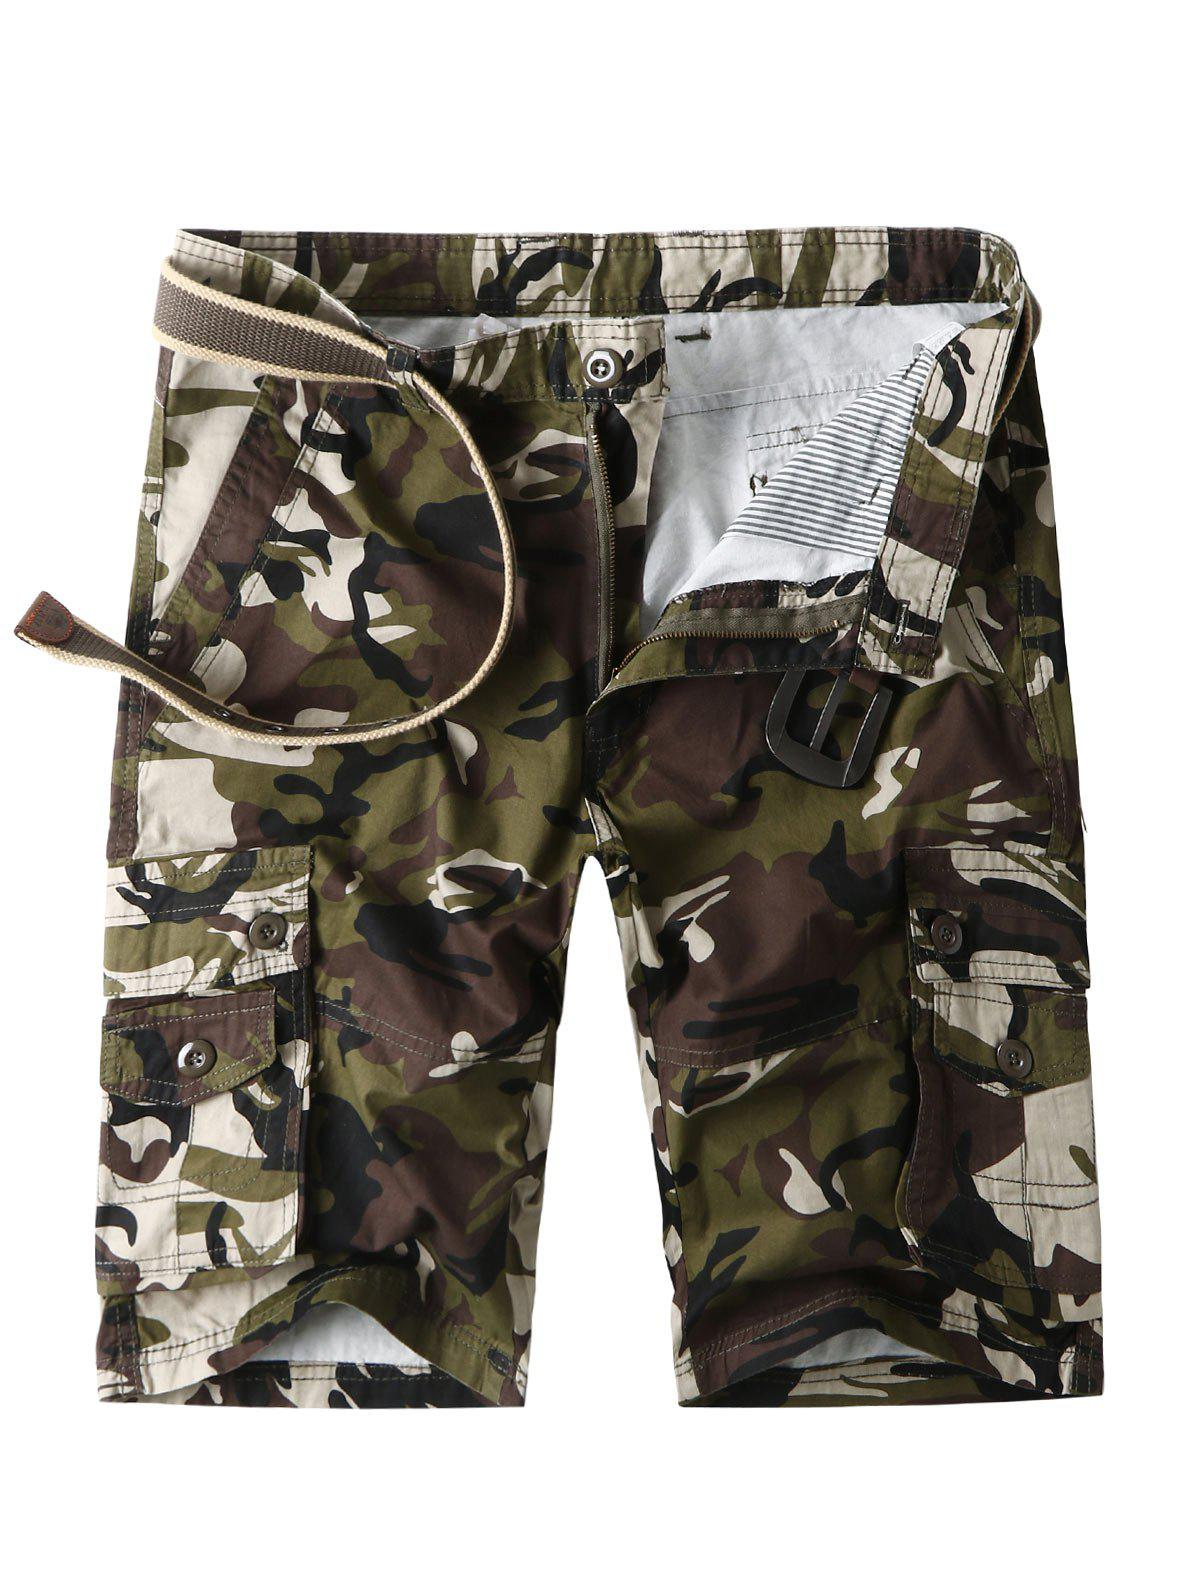 Trendy Camouflage Cargo Shorts with Multi Pockets